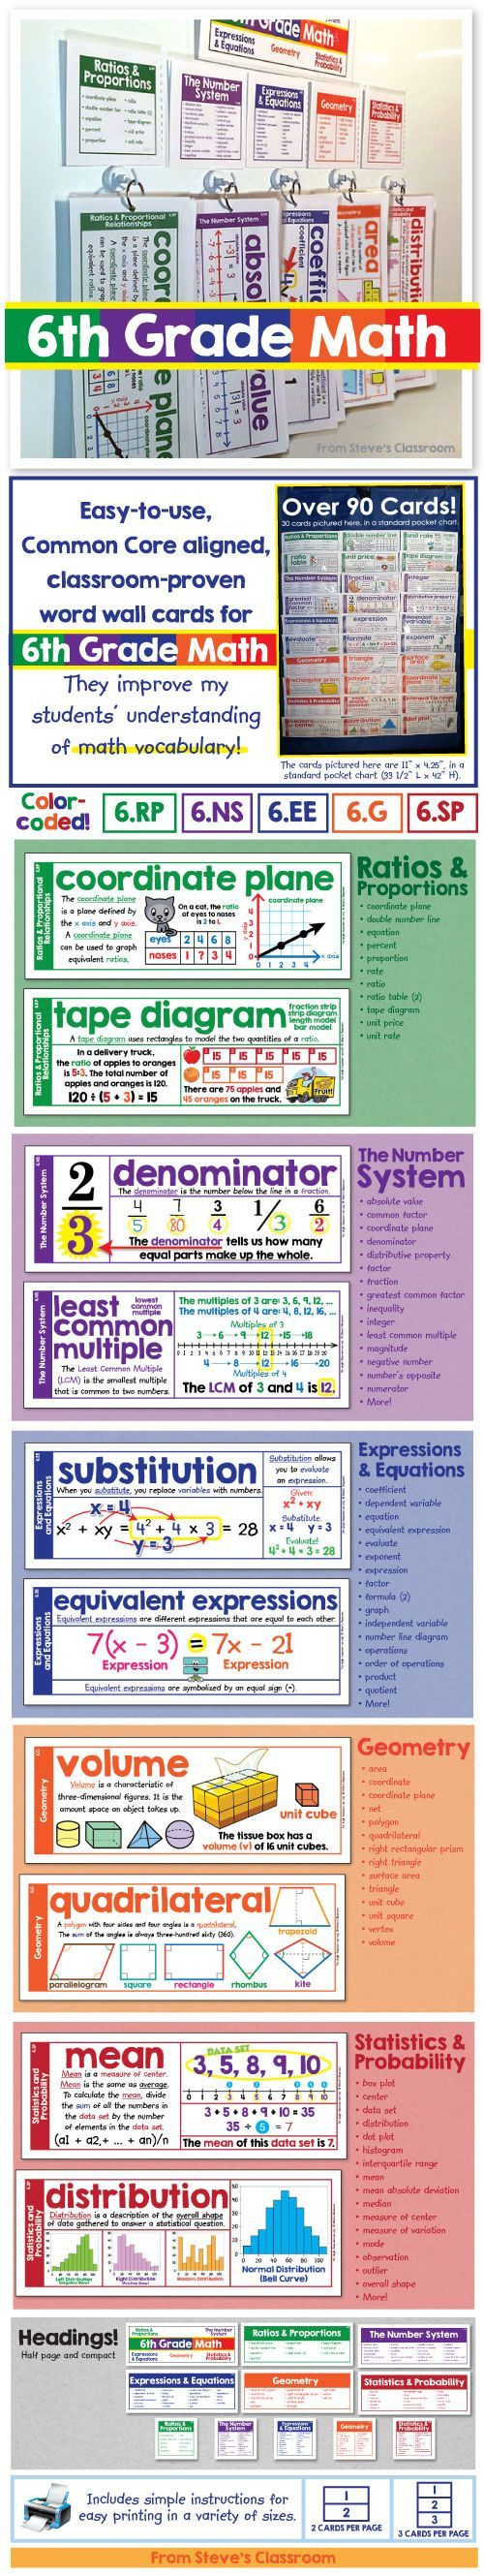 Math Word Wall For 6th Grade Grades 5 8 Available Math